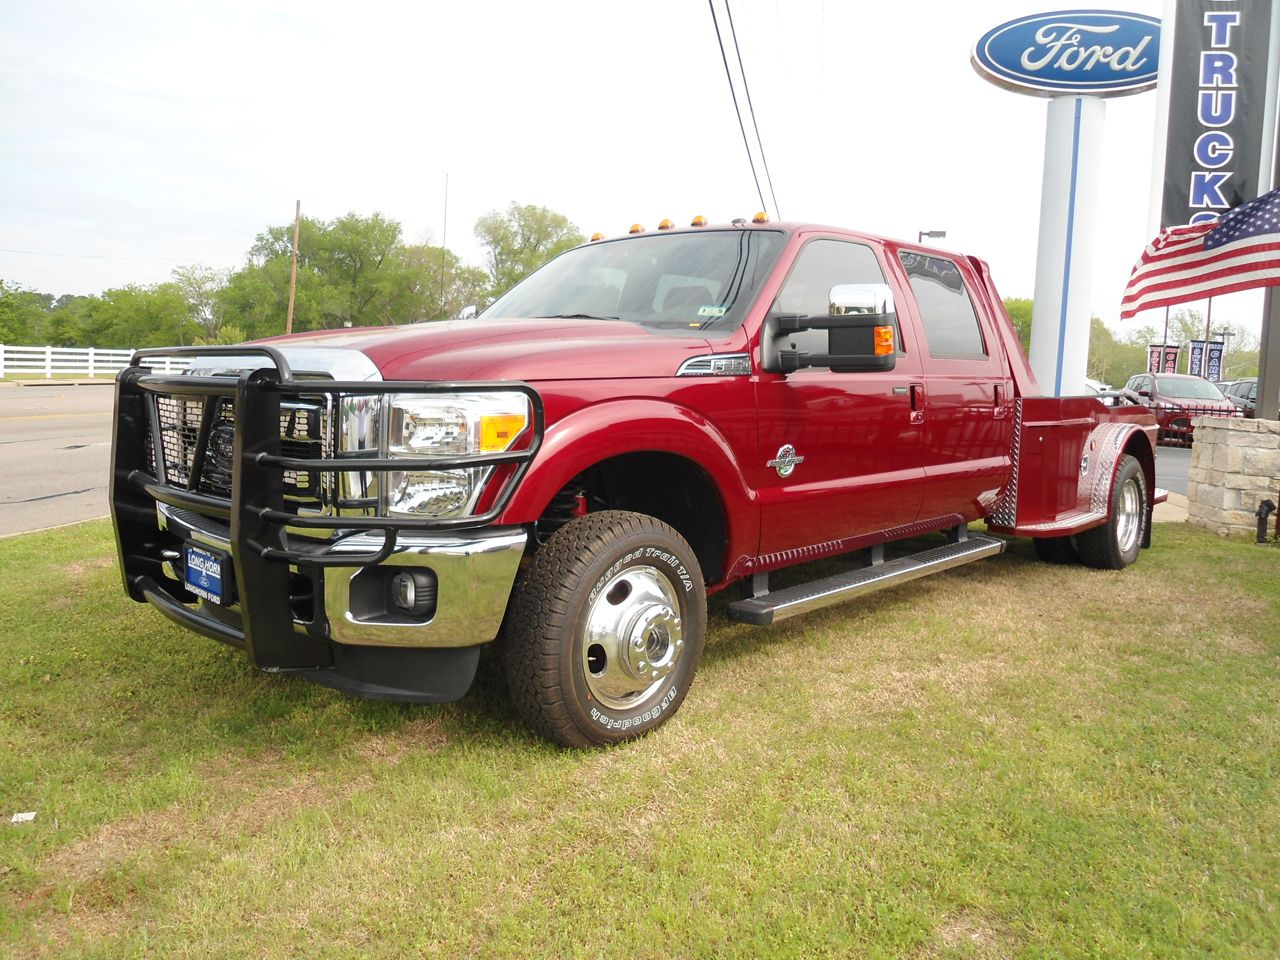 2014 ford drw lariat with a custom herrin hauler bed this hauler truck is hot from the ranch hand grill guard to the 8 foot herrin hauler bed with our